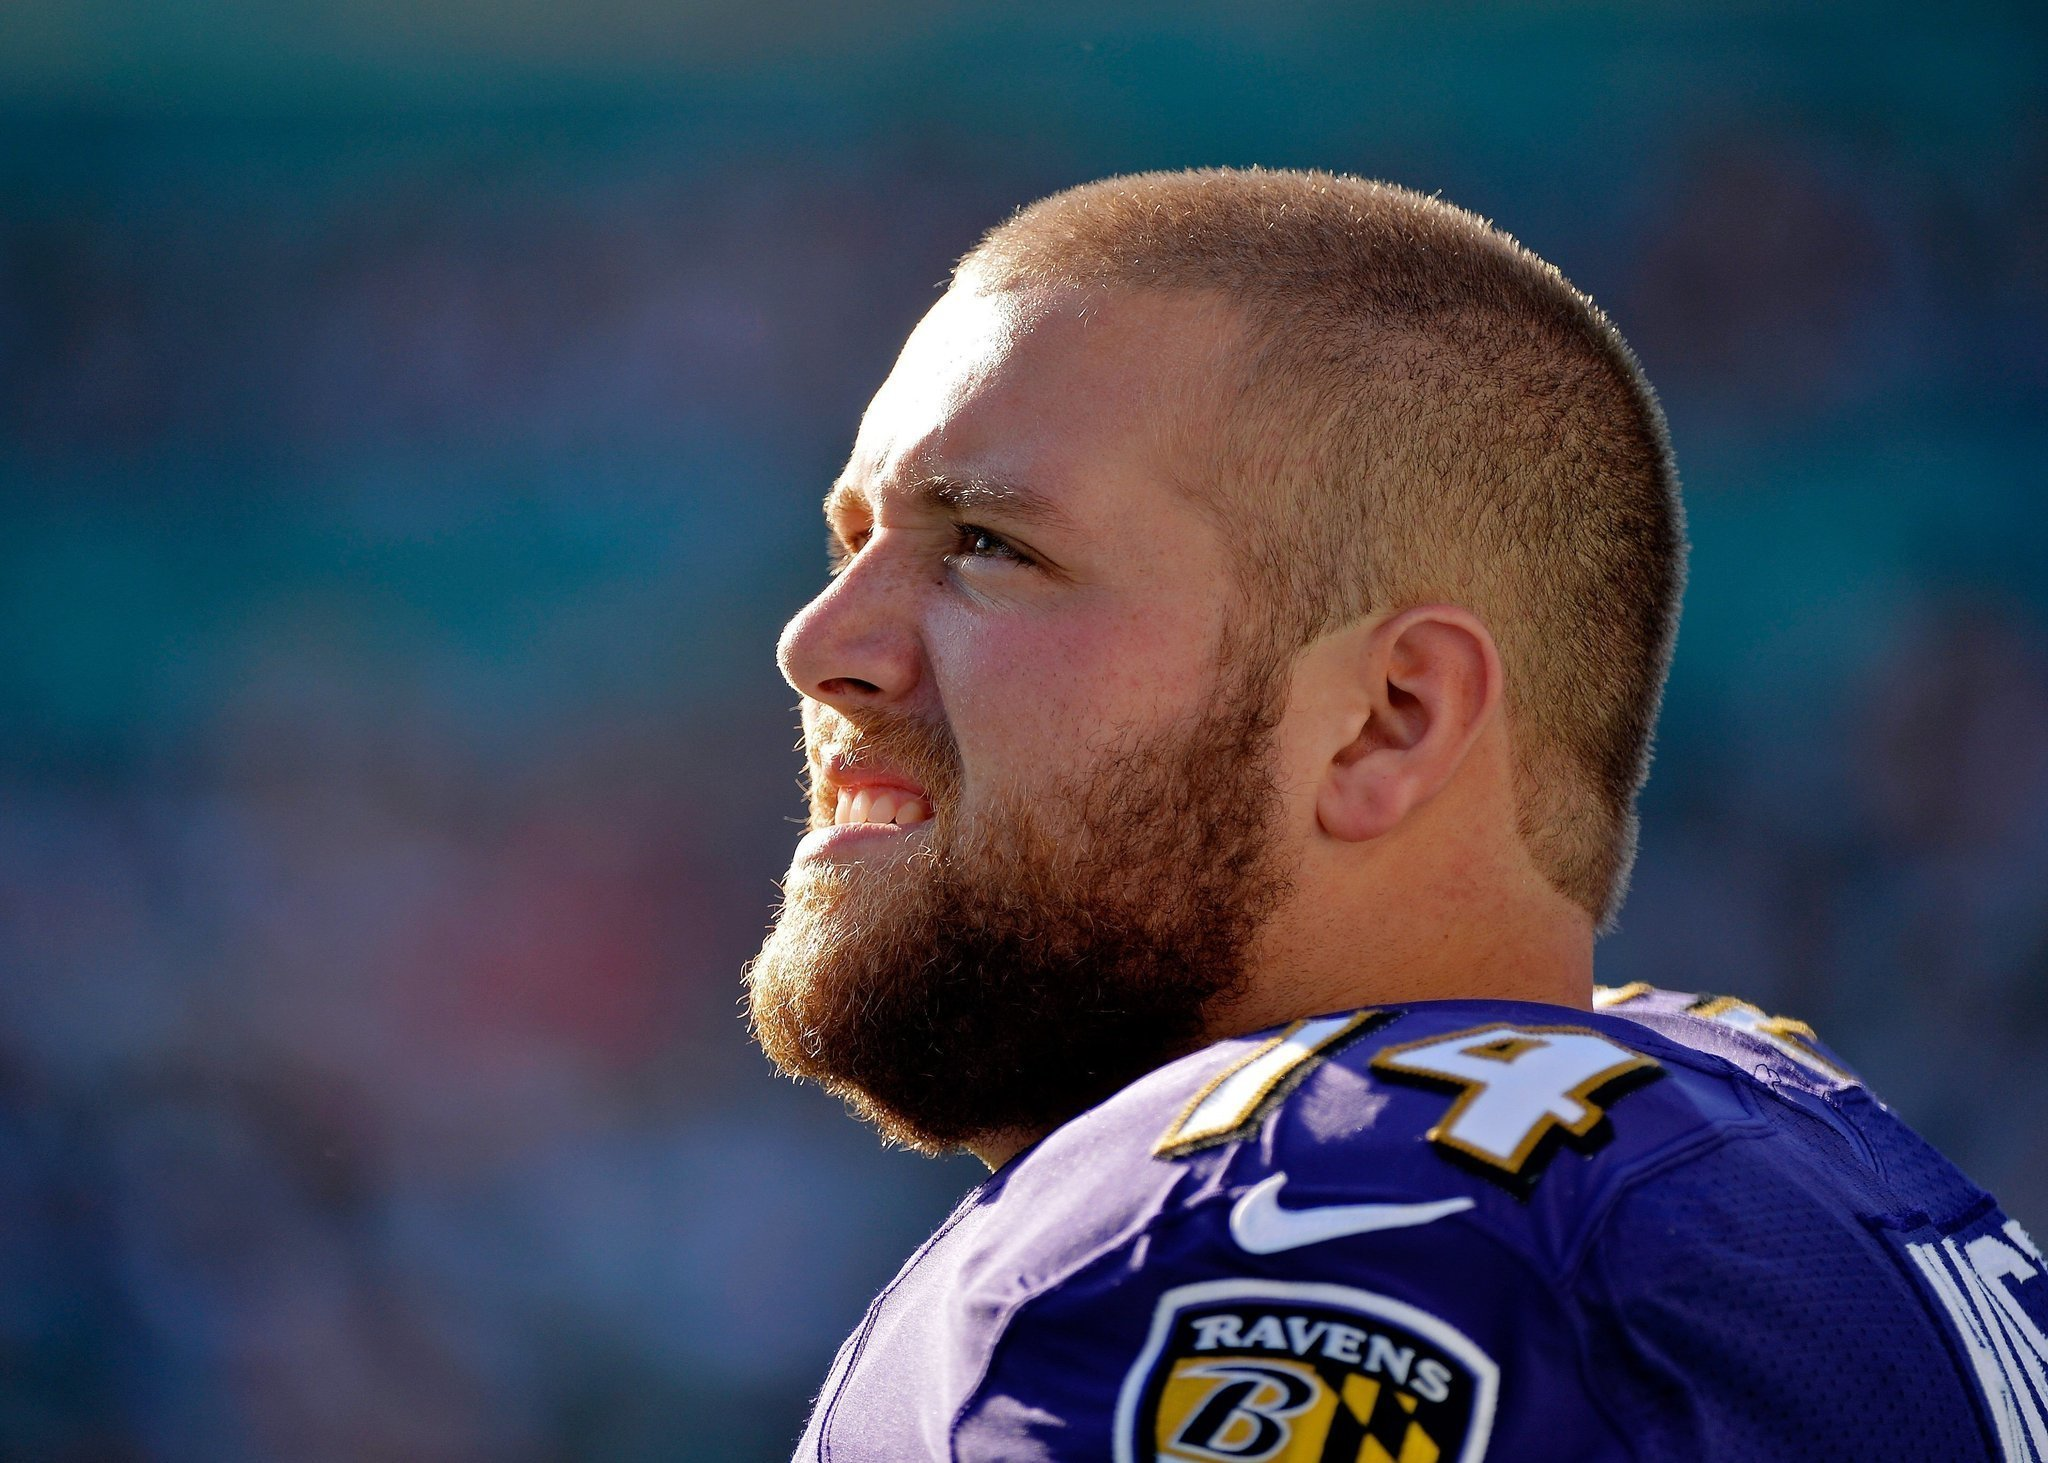 Bal-signs-point-to-james-hurst-starting-for-ronnie-stanley-at-left-tackle-in-ravens-game-vs-raiders-20160930